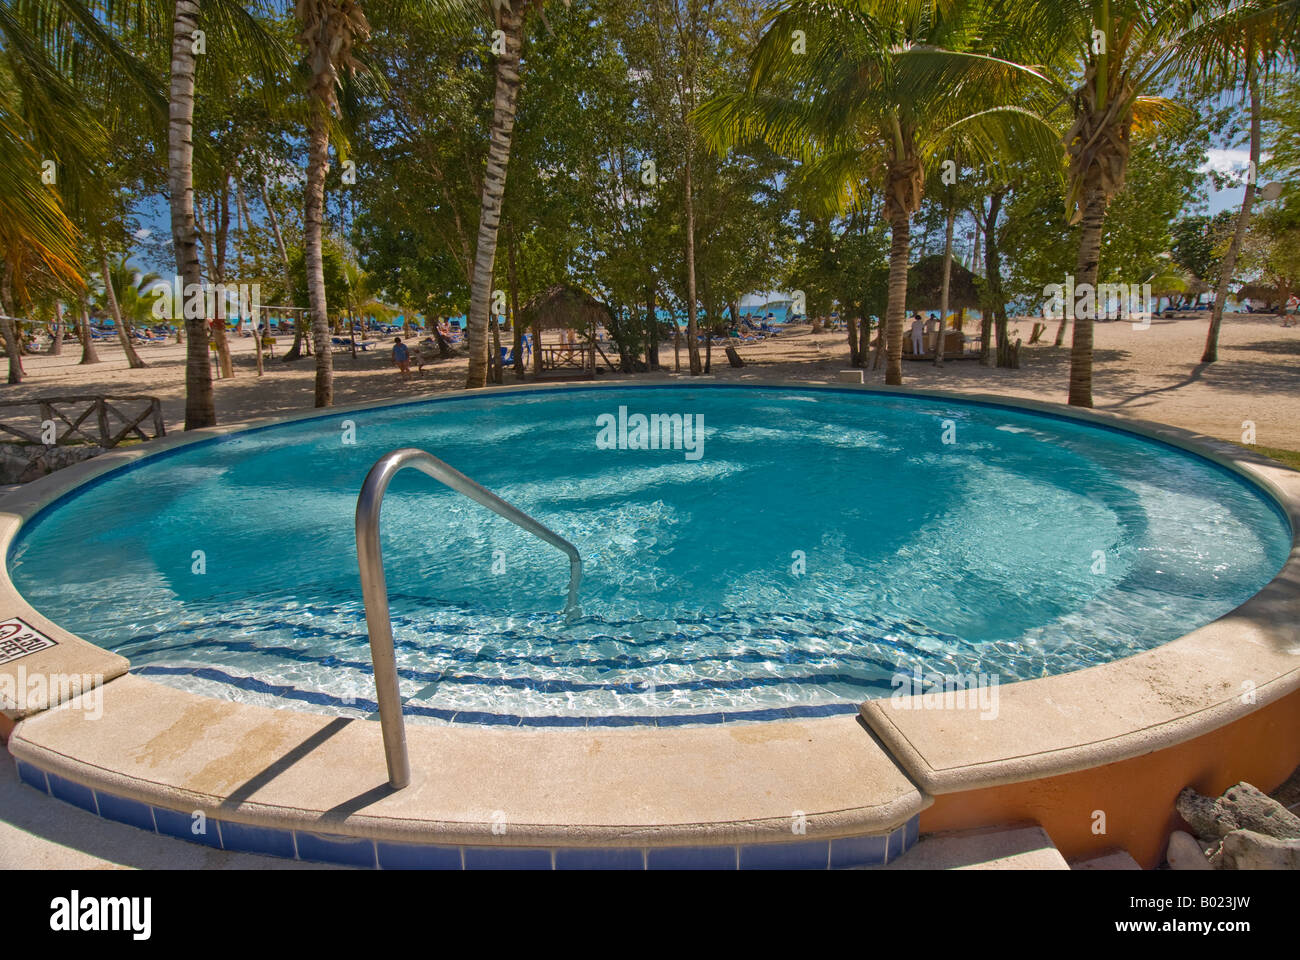 Dominican republic bayahibe small round swimming pool palm trees stock photo 17257153 alamy - Palm beach pool ...